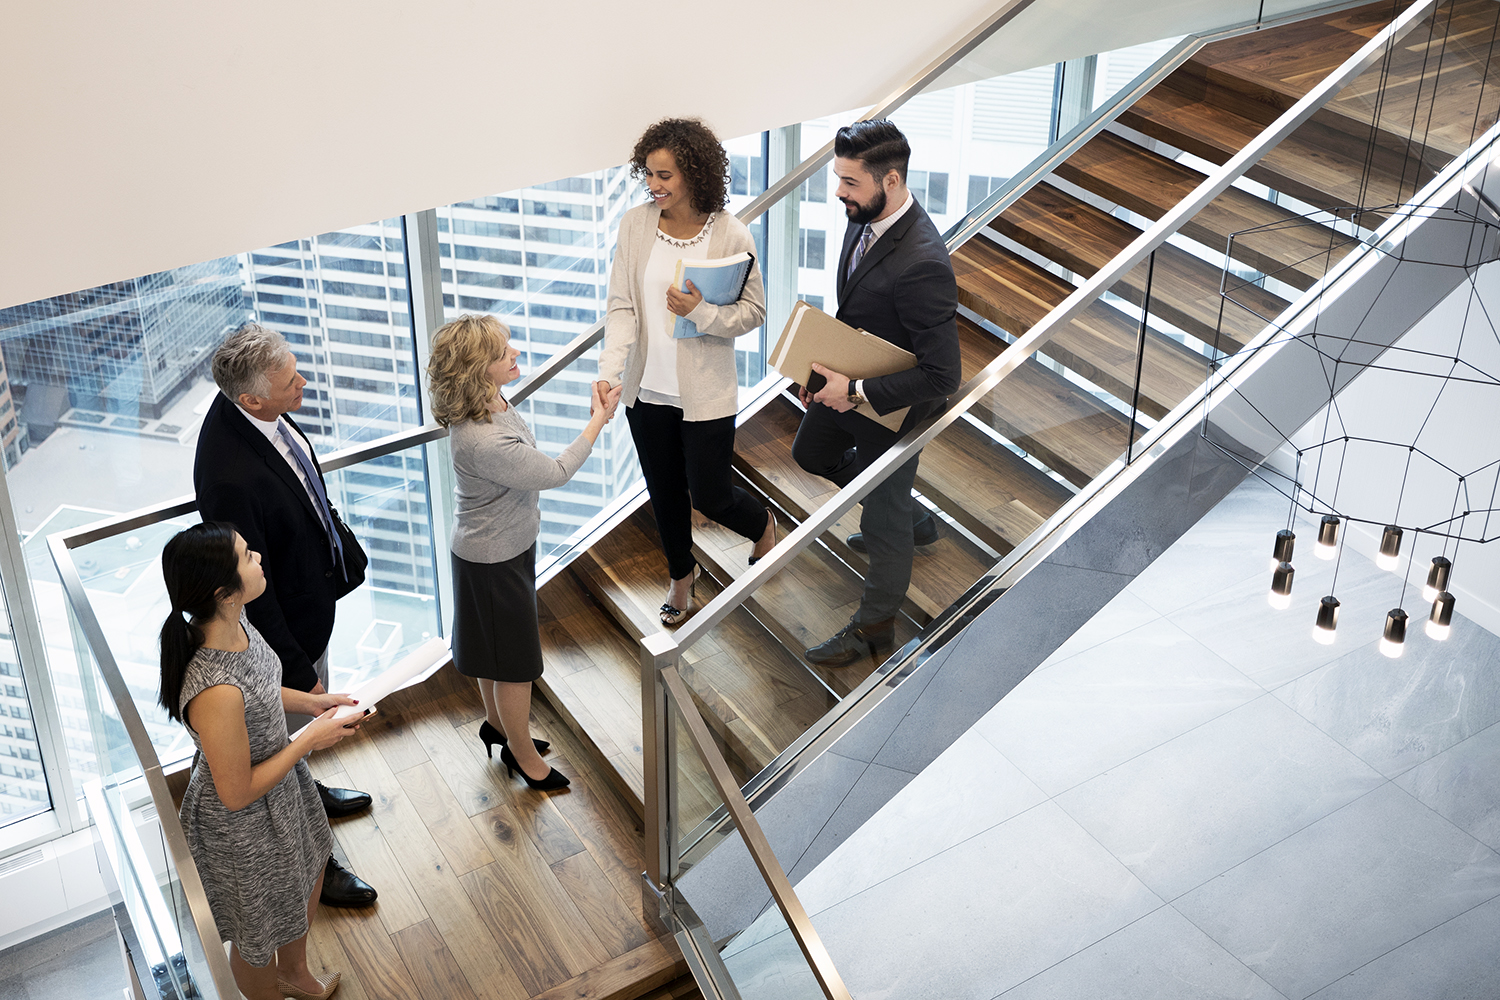 Business people handshaking on modern, urban office staircase